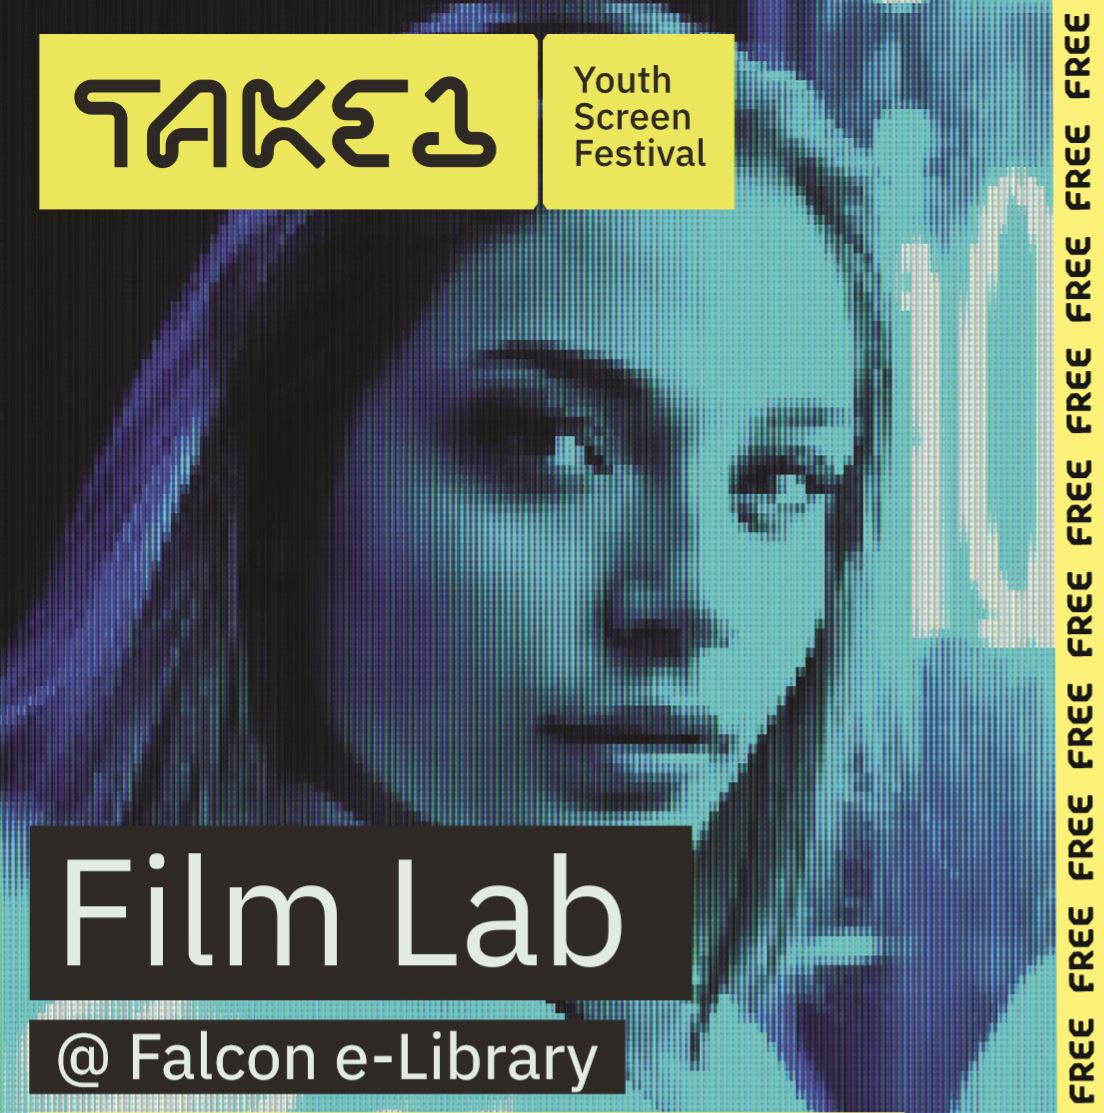 Film Lab Session 6